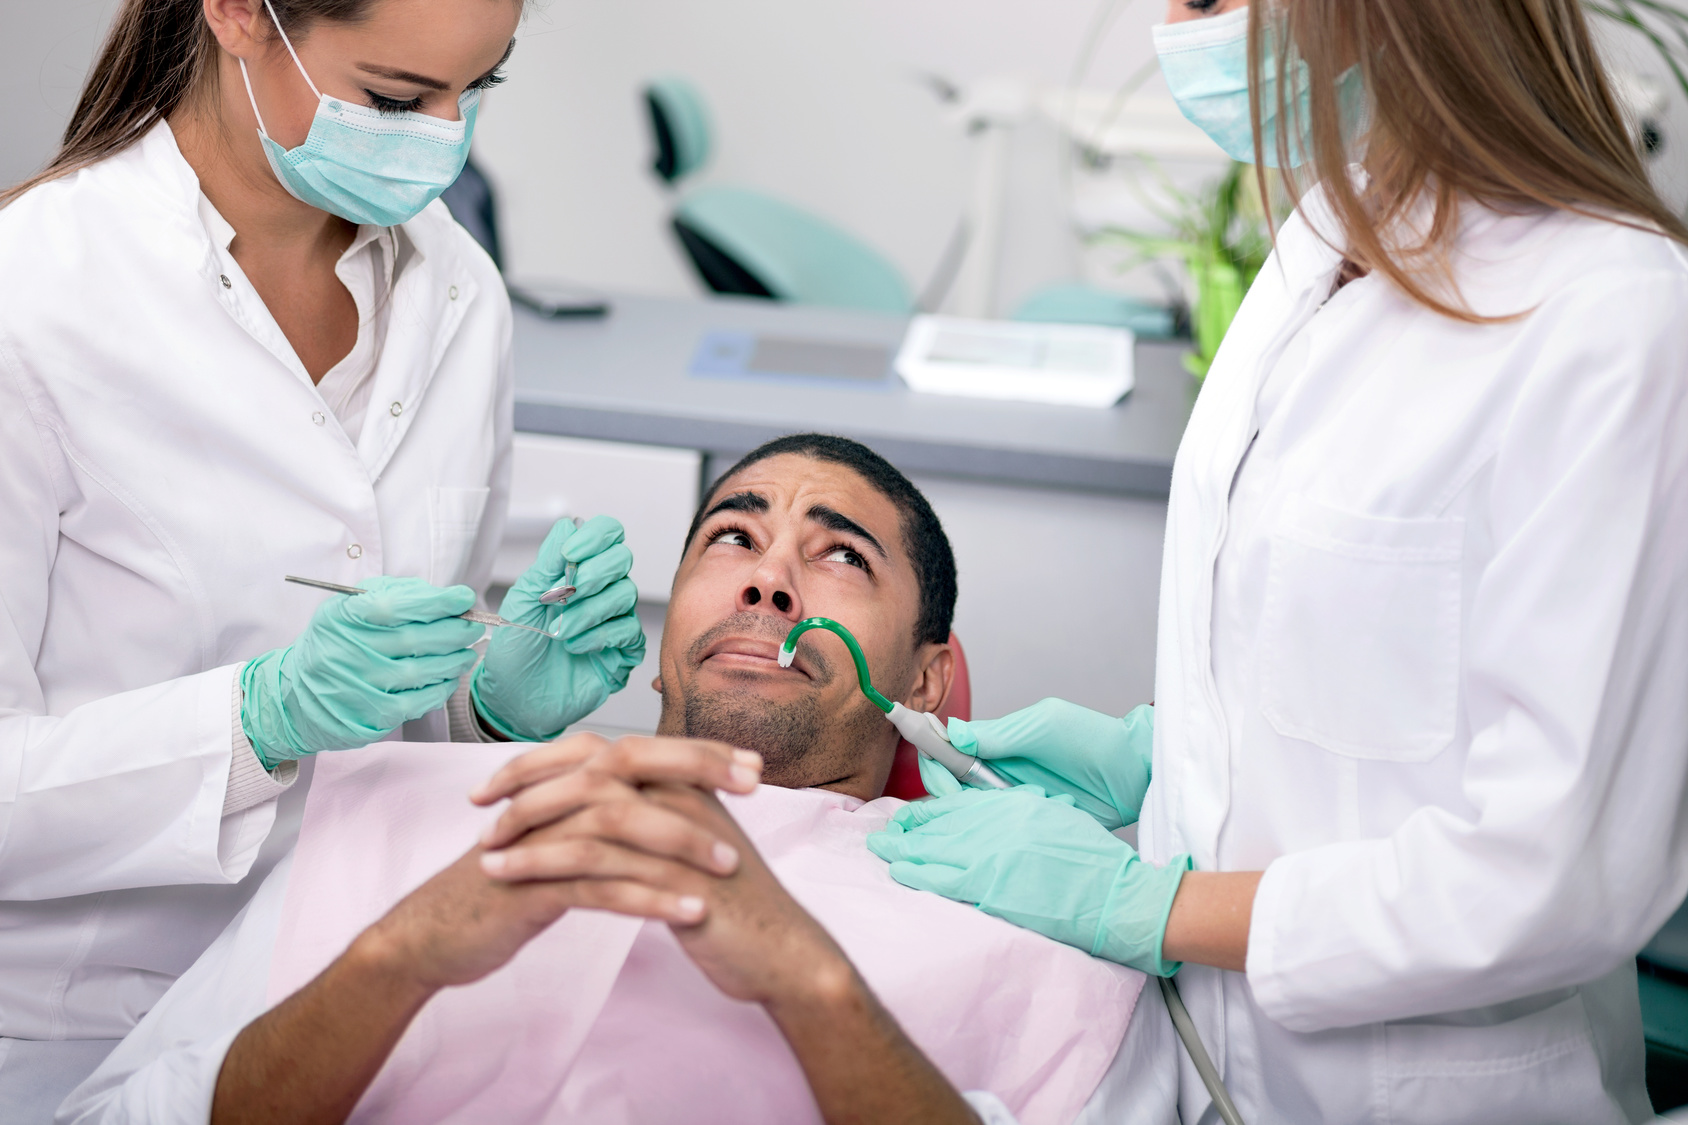 dentists trying to comfort nervous patient before a dental procedure